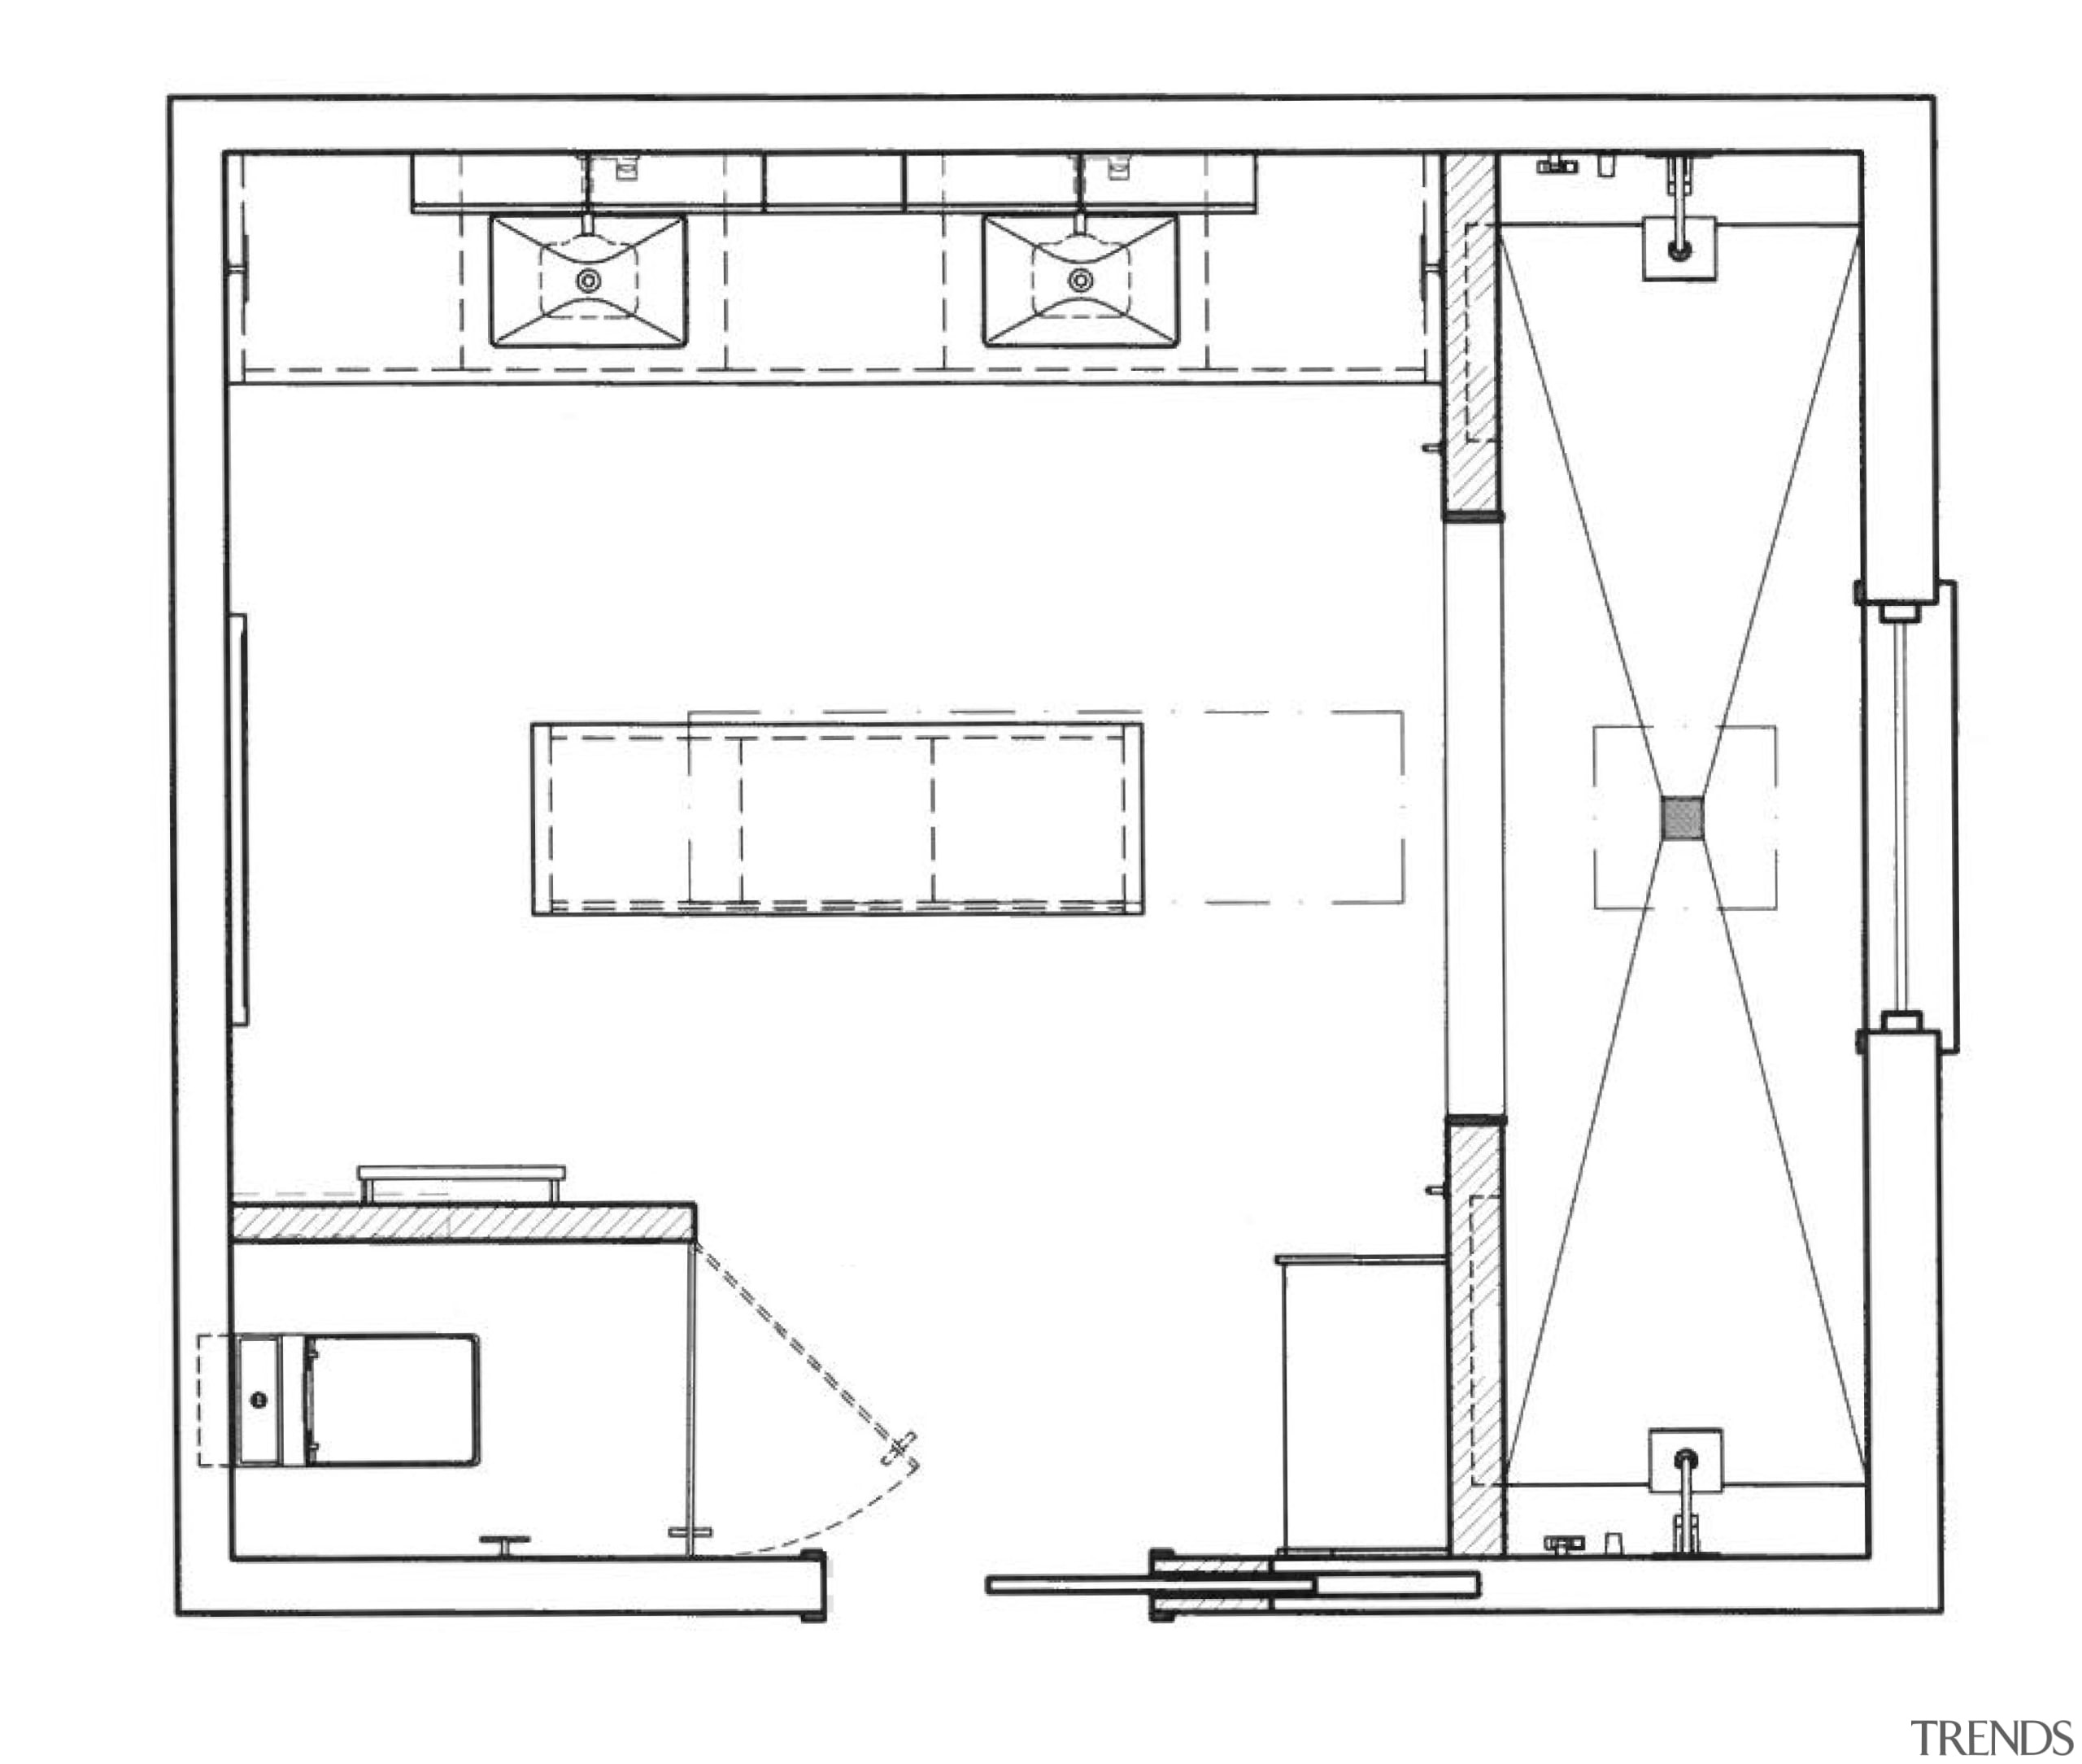 The two his and hers shower niches are angle, area, artwork, black and white, design, diagram, drawing, floor plan, font, furniture, line, plan, product, product design, structure, technical drawing, white